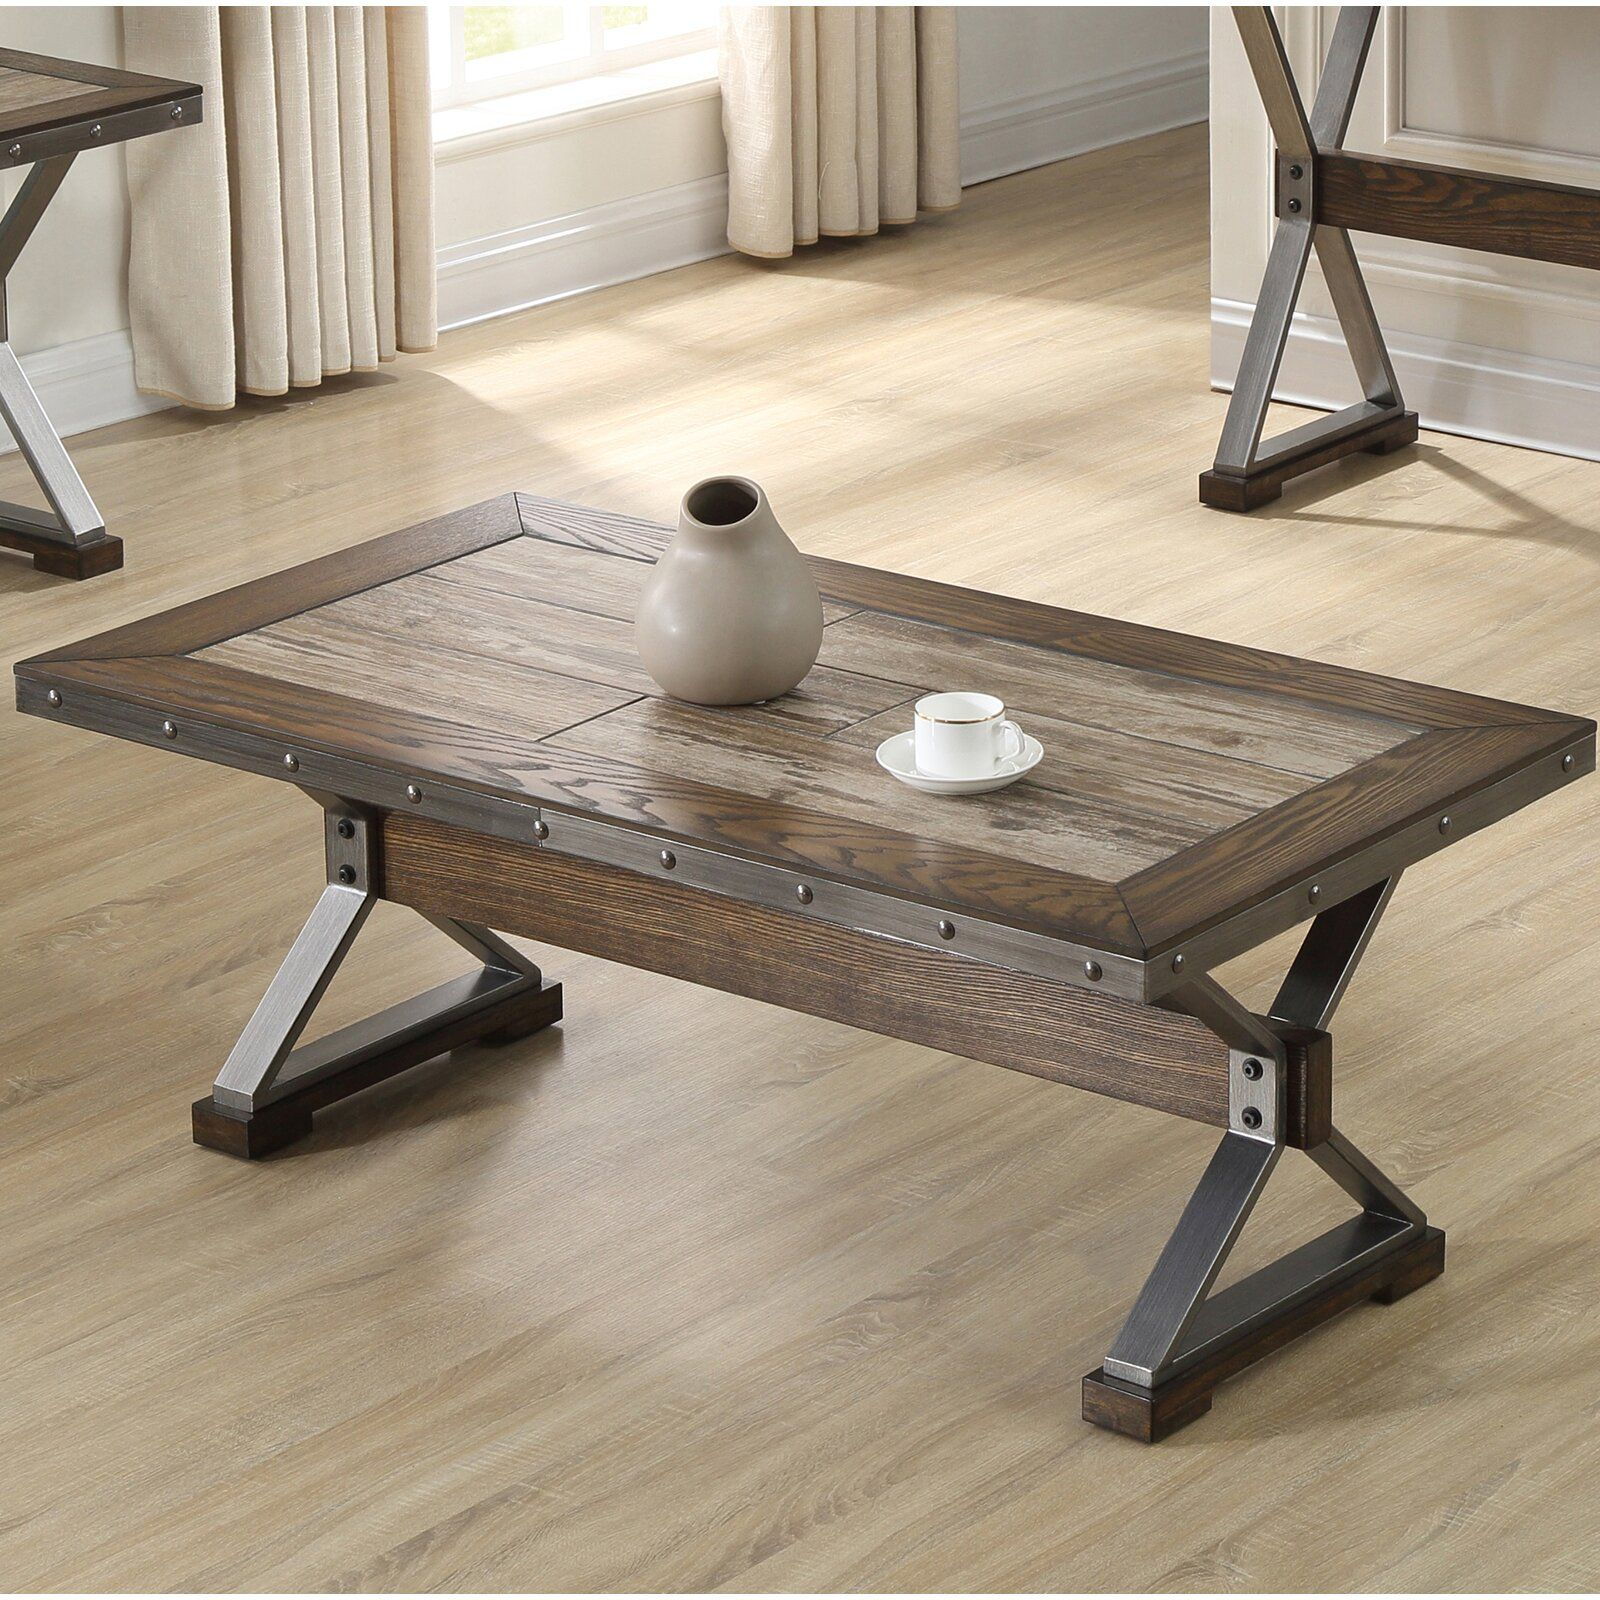 Williston Forge Locksley Coffee Table In 2020 Welding Table